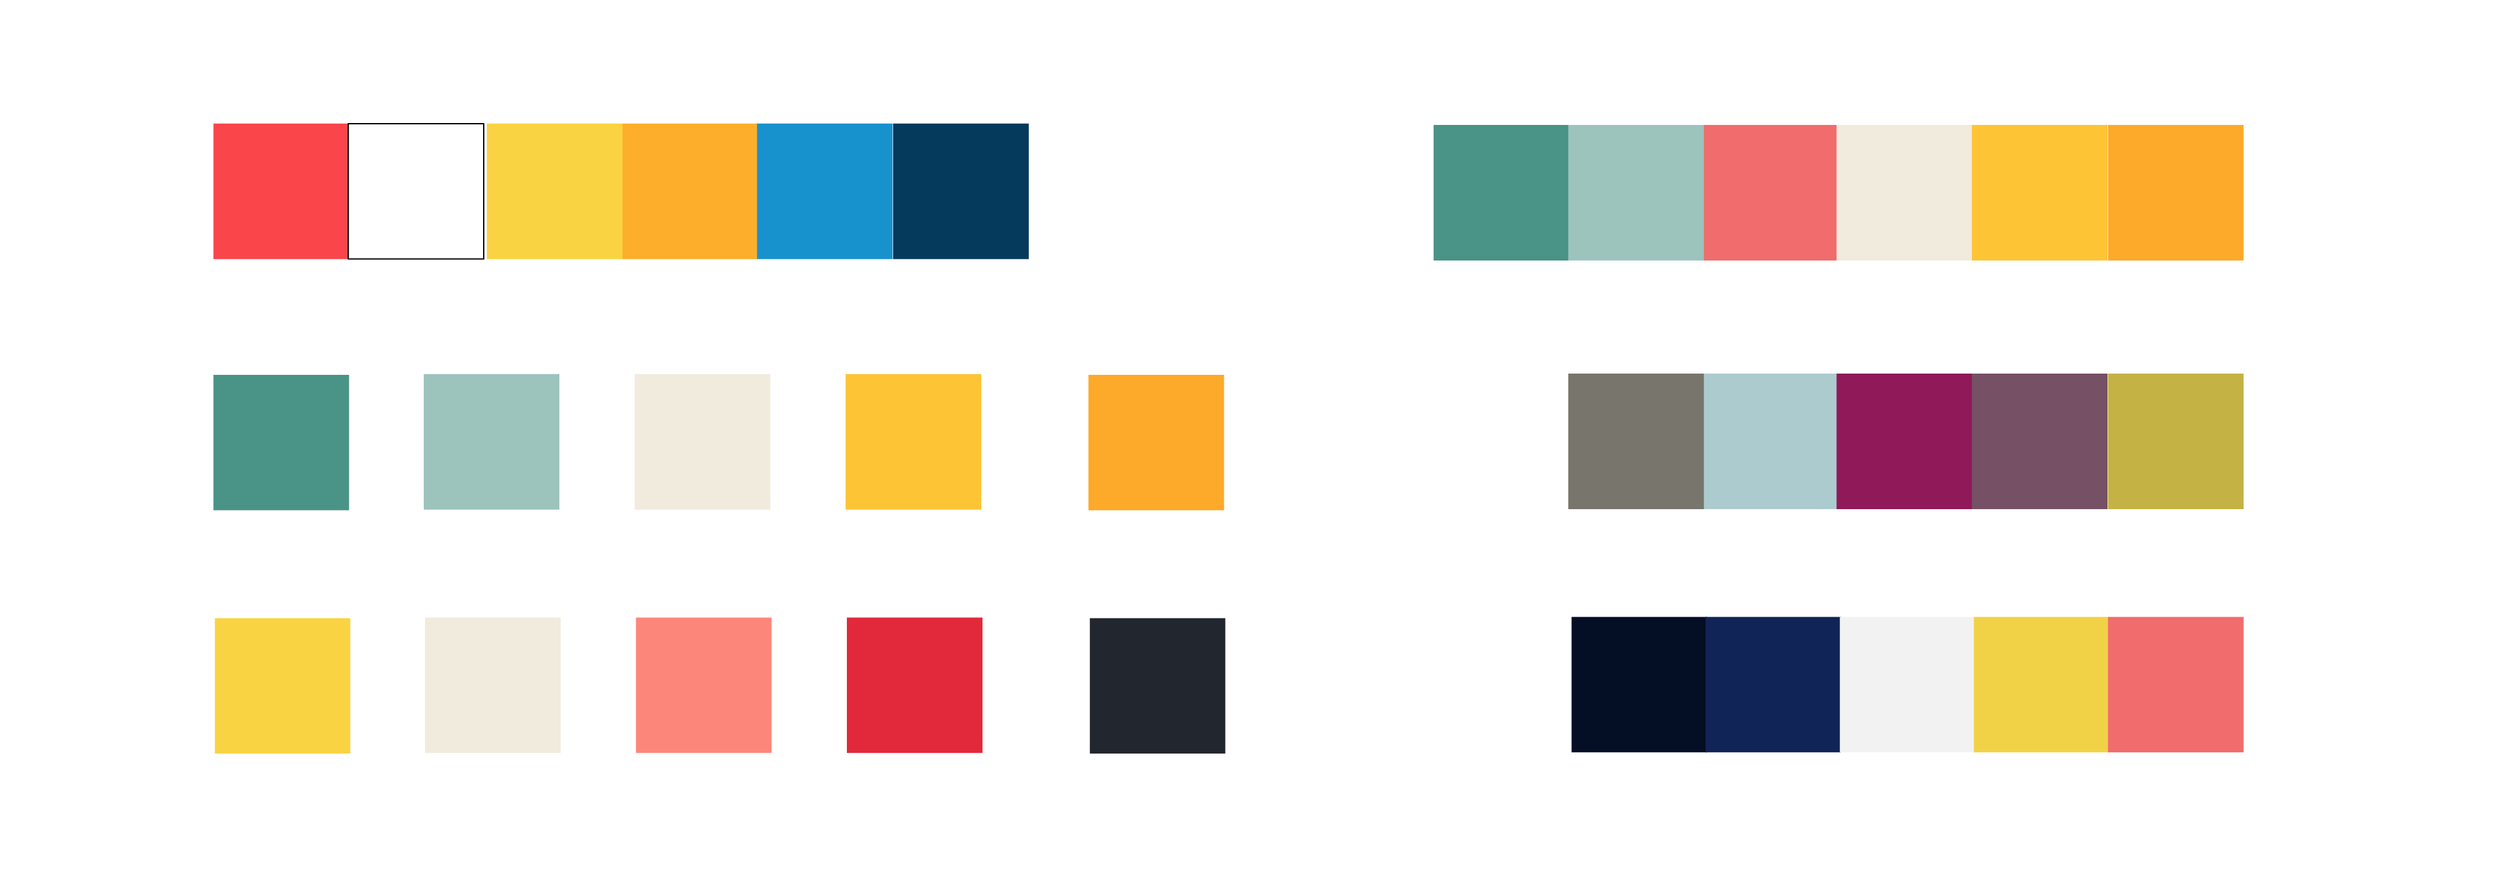 color-exploration-for-bitcoin-project.png